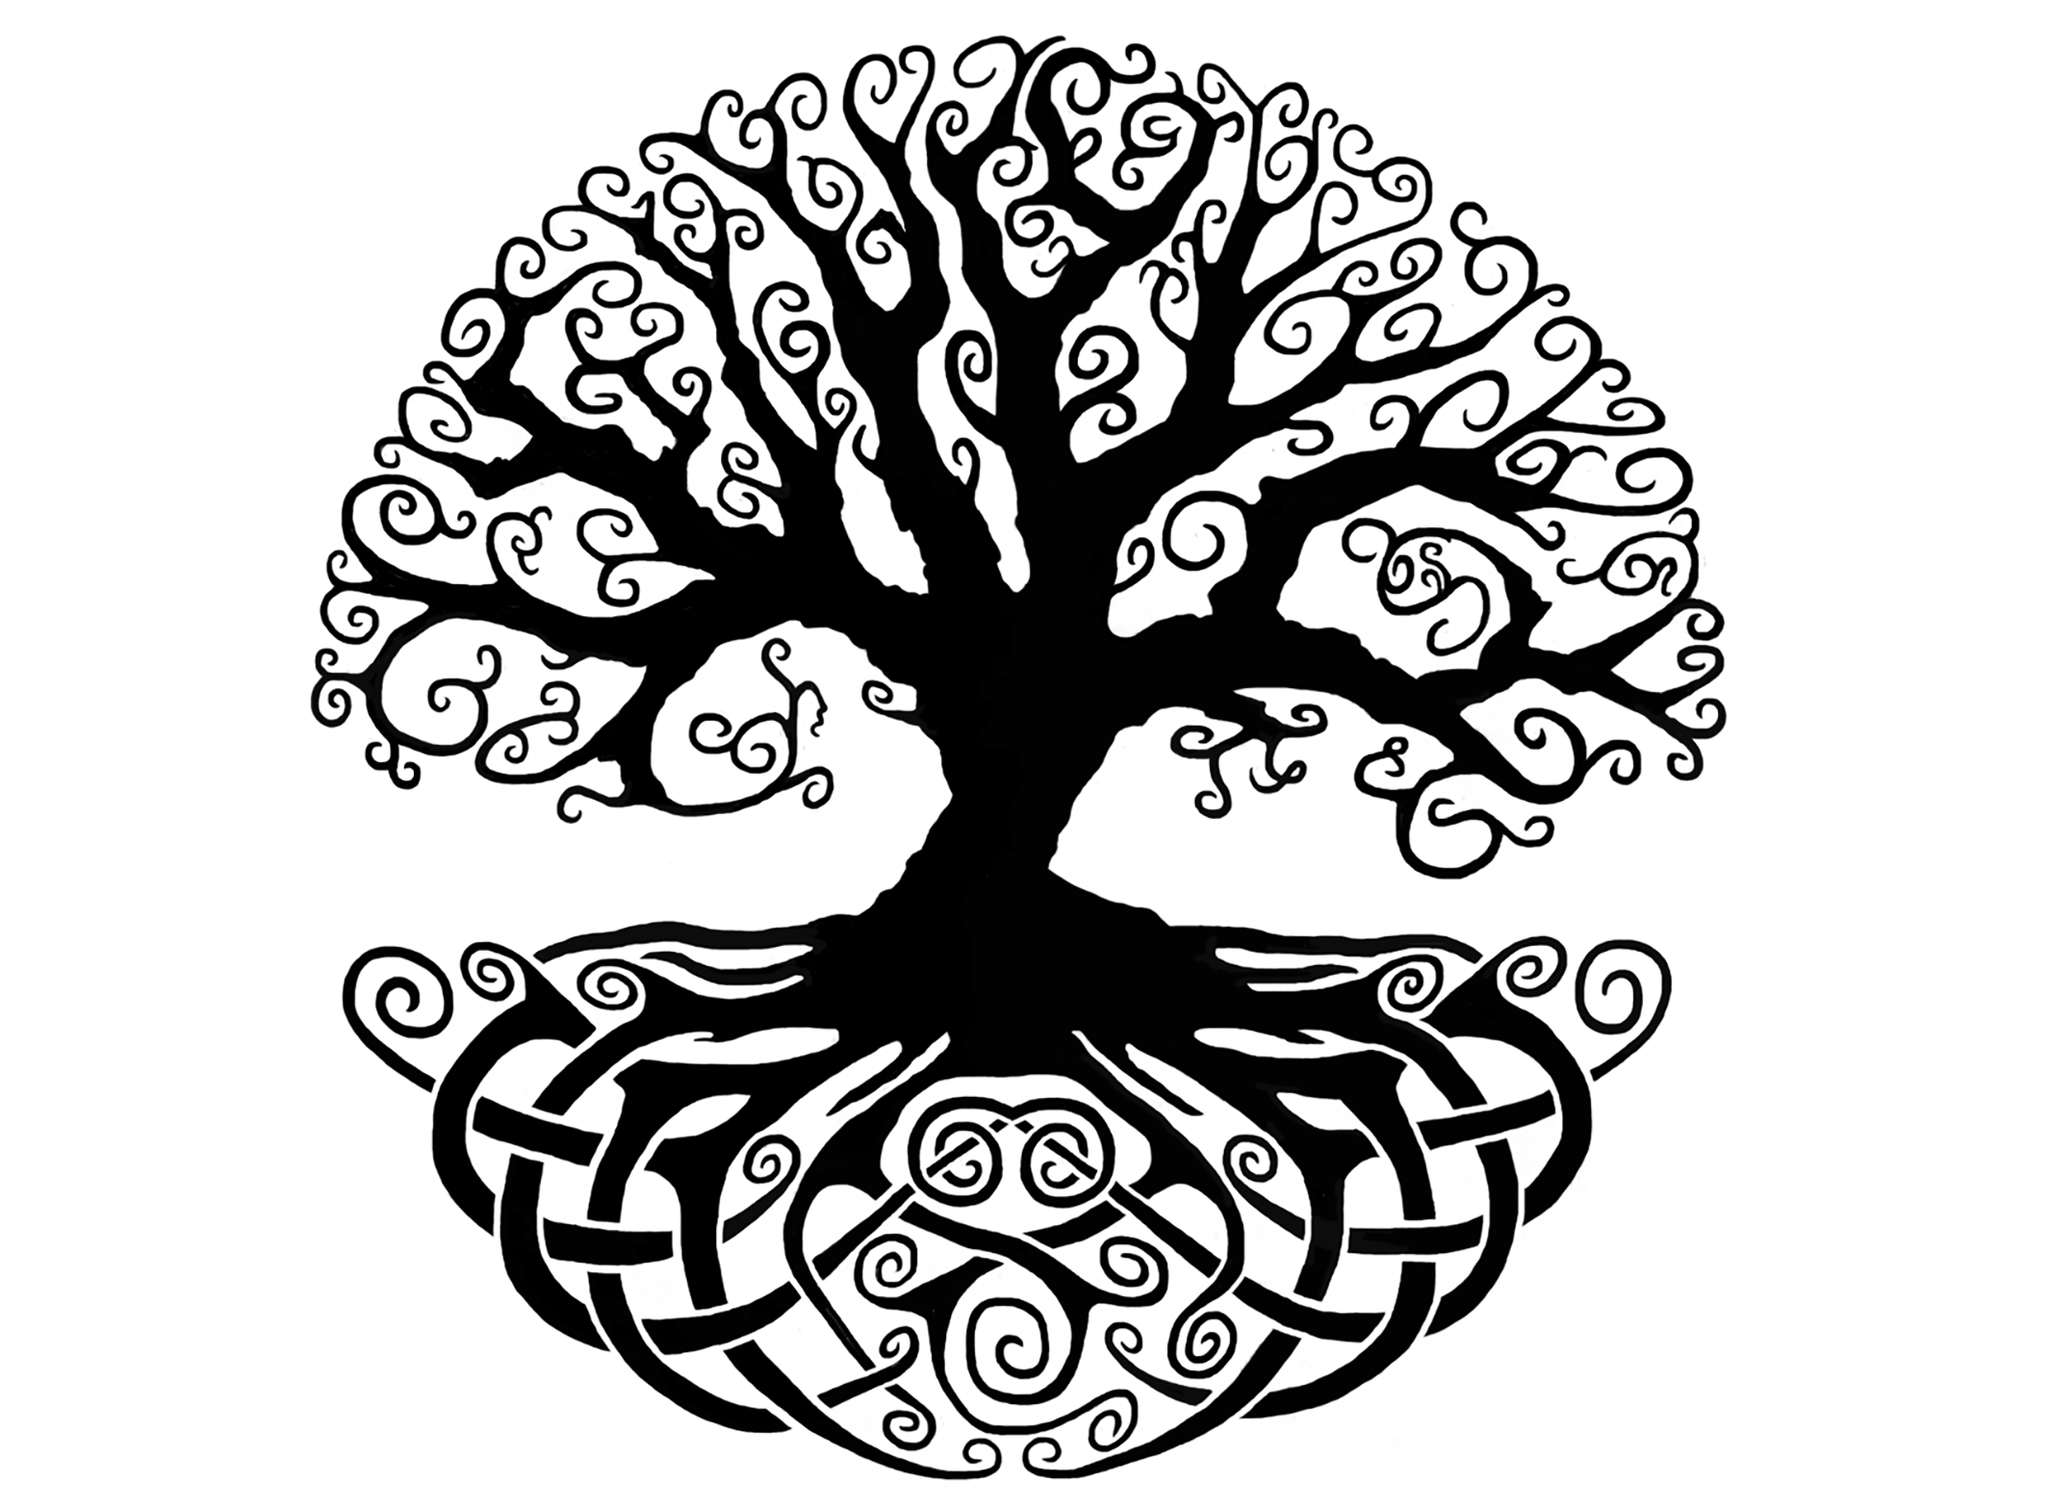 celtic tree of life drawing at getdrawings com free for personal